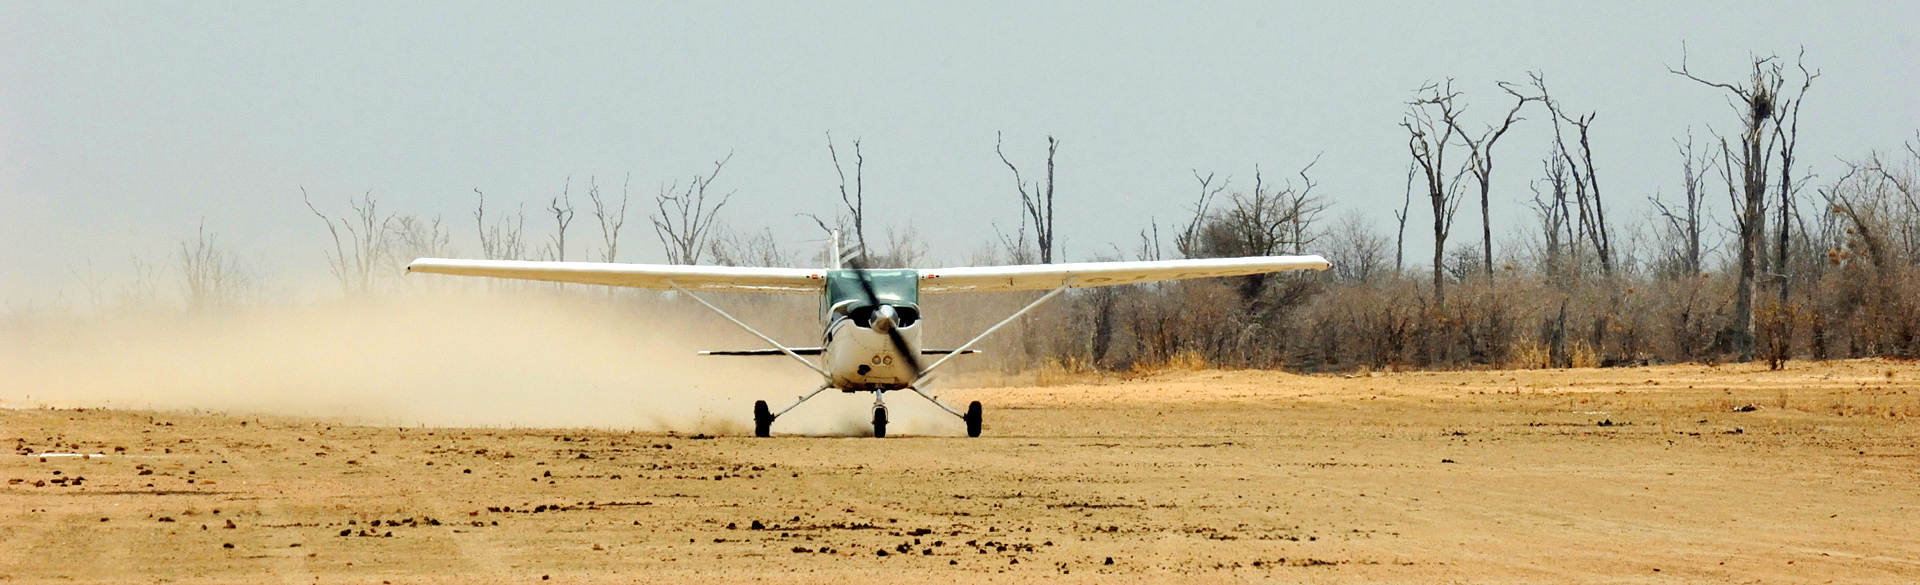 Hot arrival at the end of the dry season courtesy John Coppinger